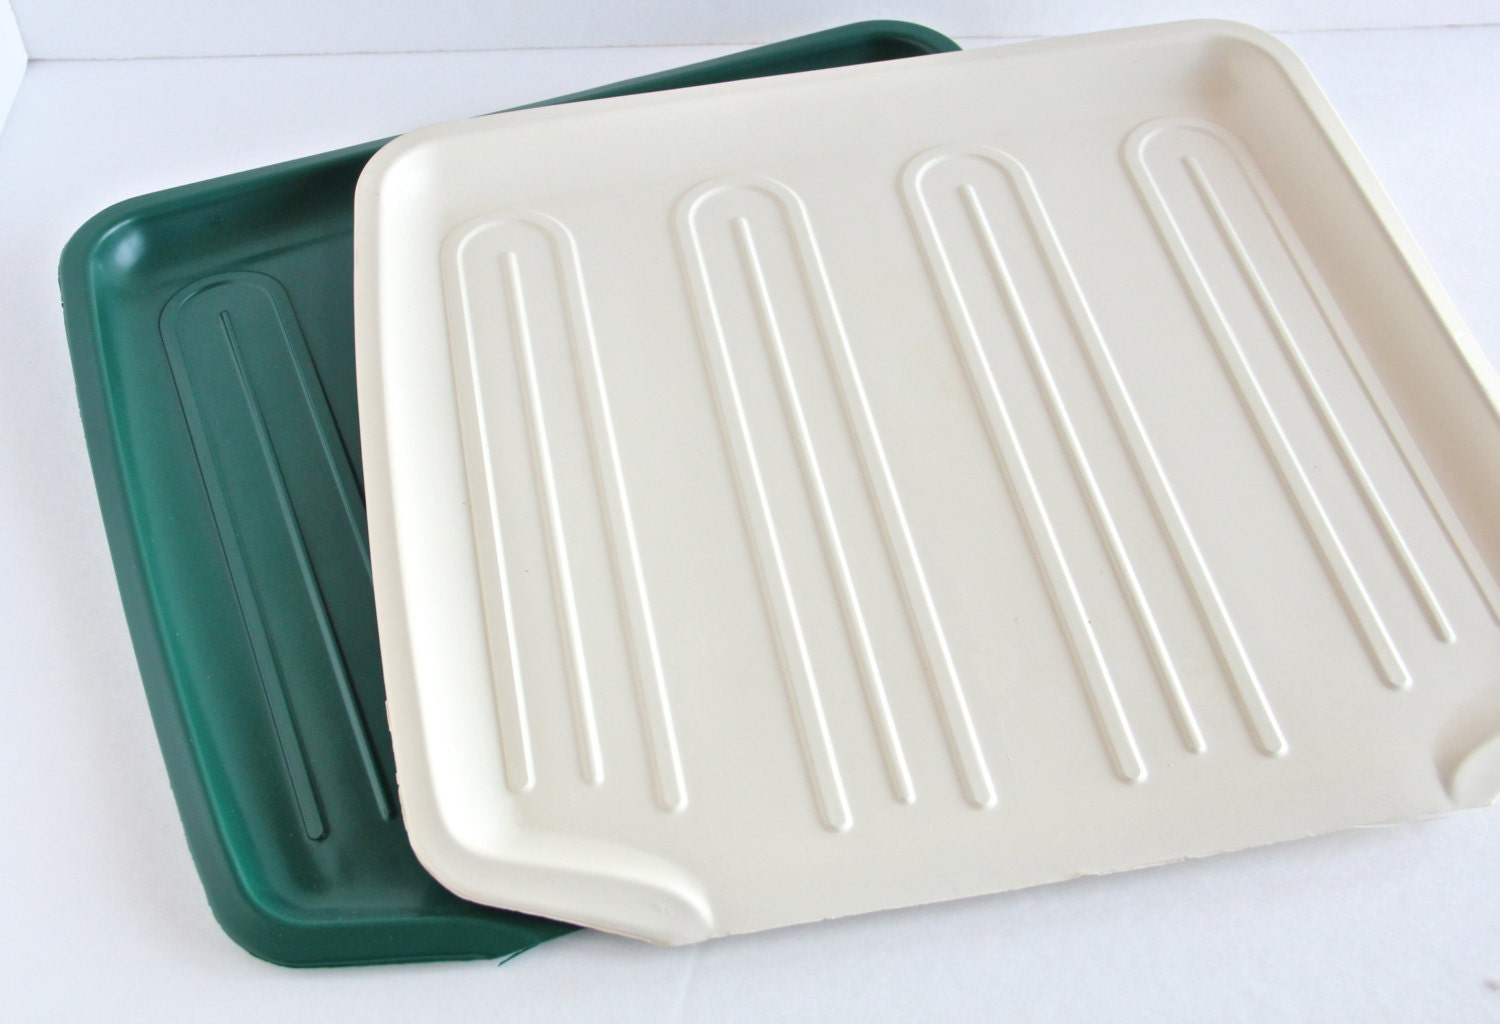 Rubbermaid Drainboard Mat Dish Drainer / by TheWrinklyElephant